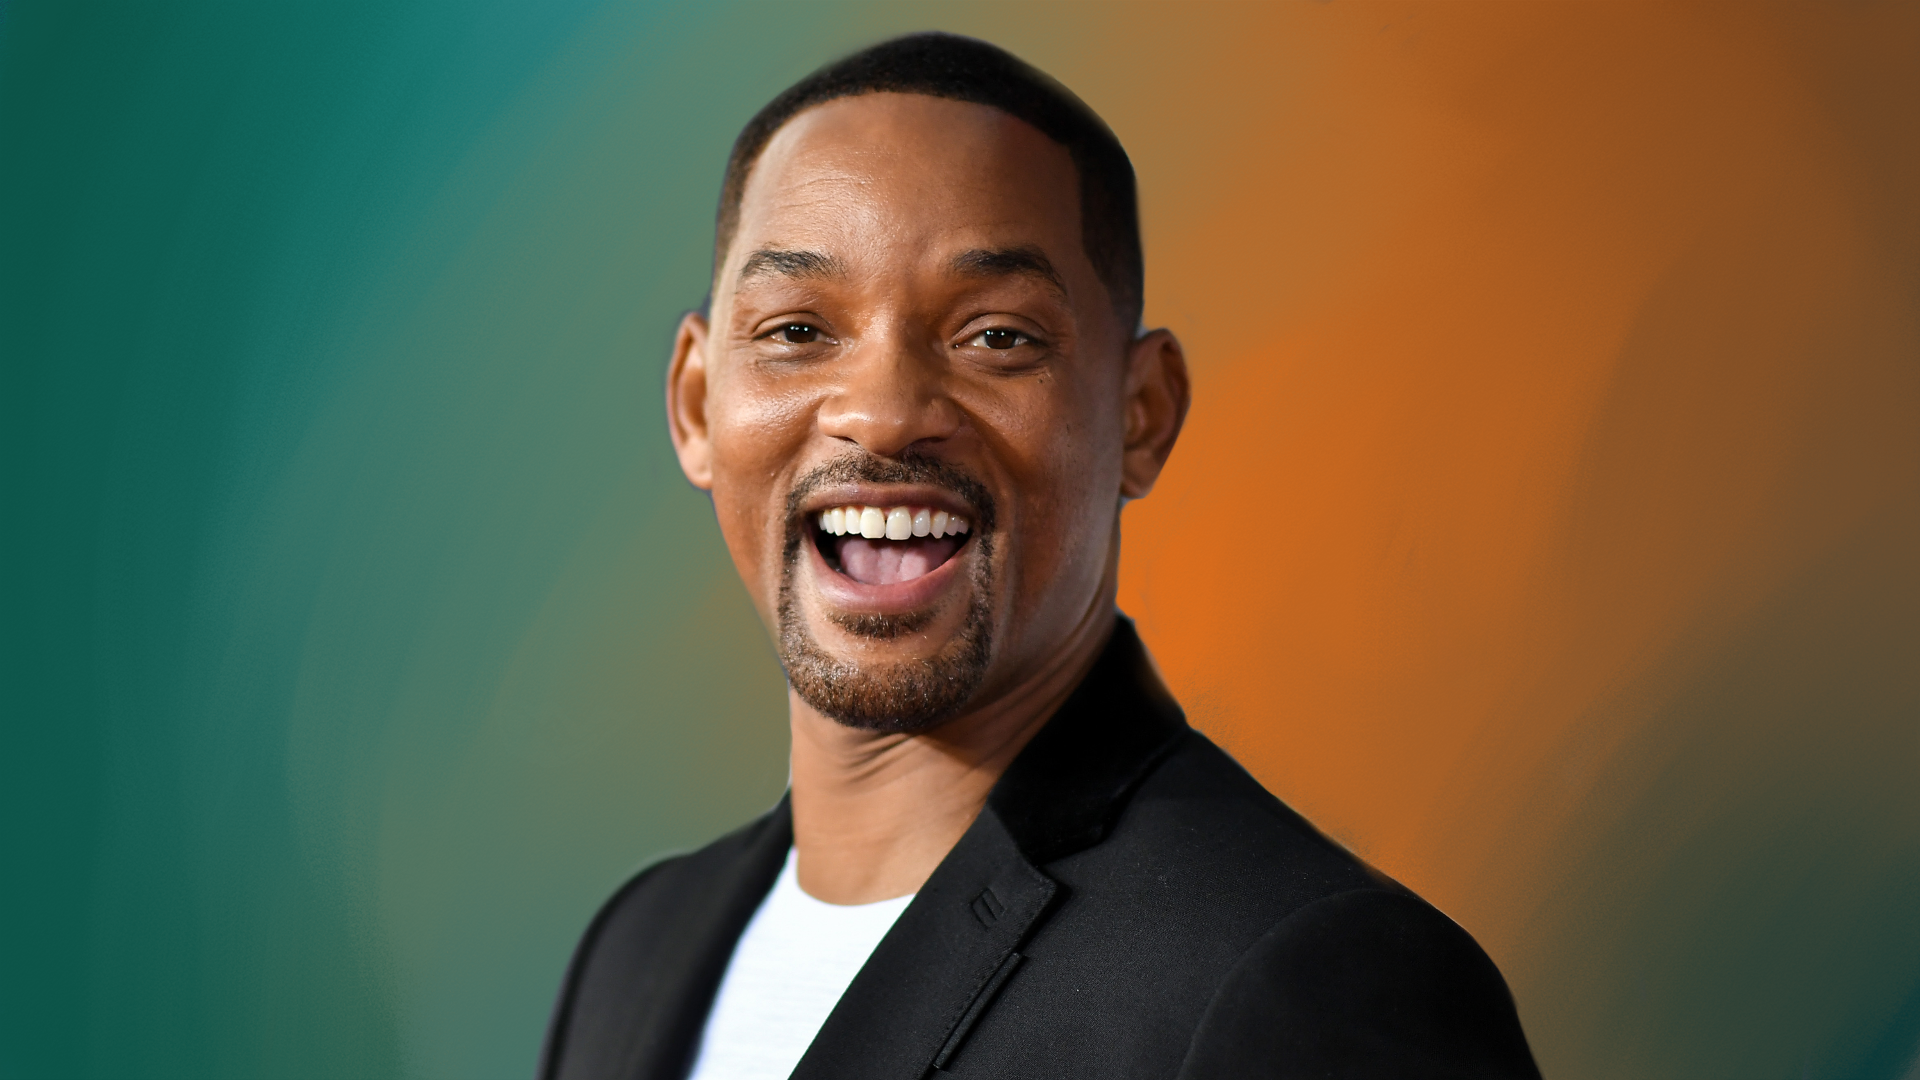 3 Quotes by Will Smith to Help You Manifest the Life You Want